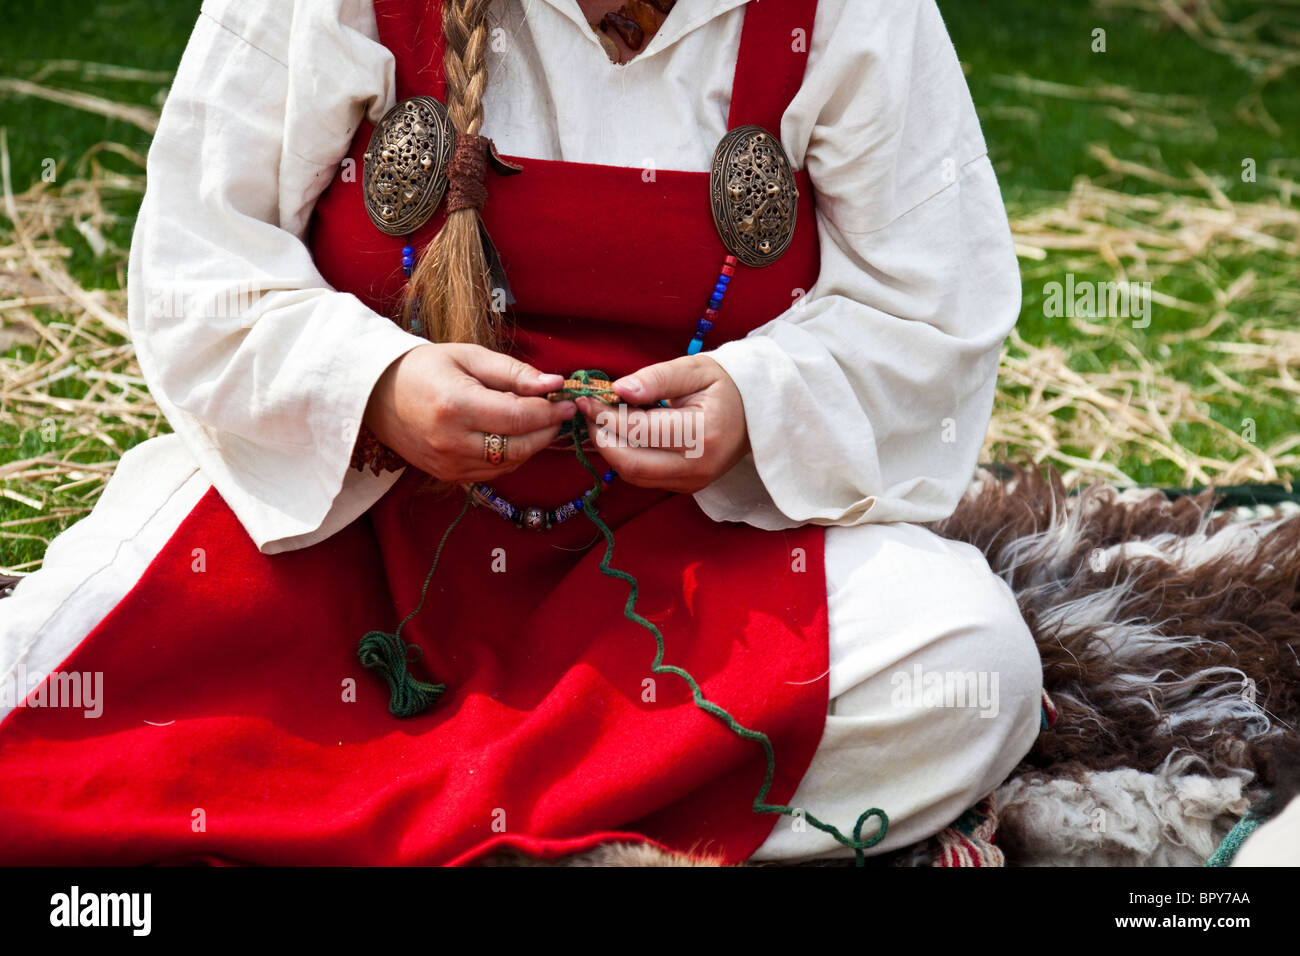 Detail of a woman historical re-enactor wearing Viking clothes (underdress and hangerock) and doing craft work at - Stock Image